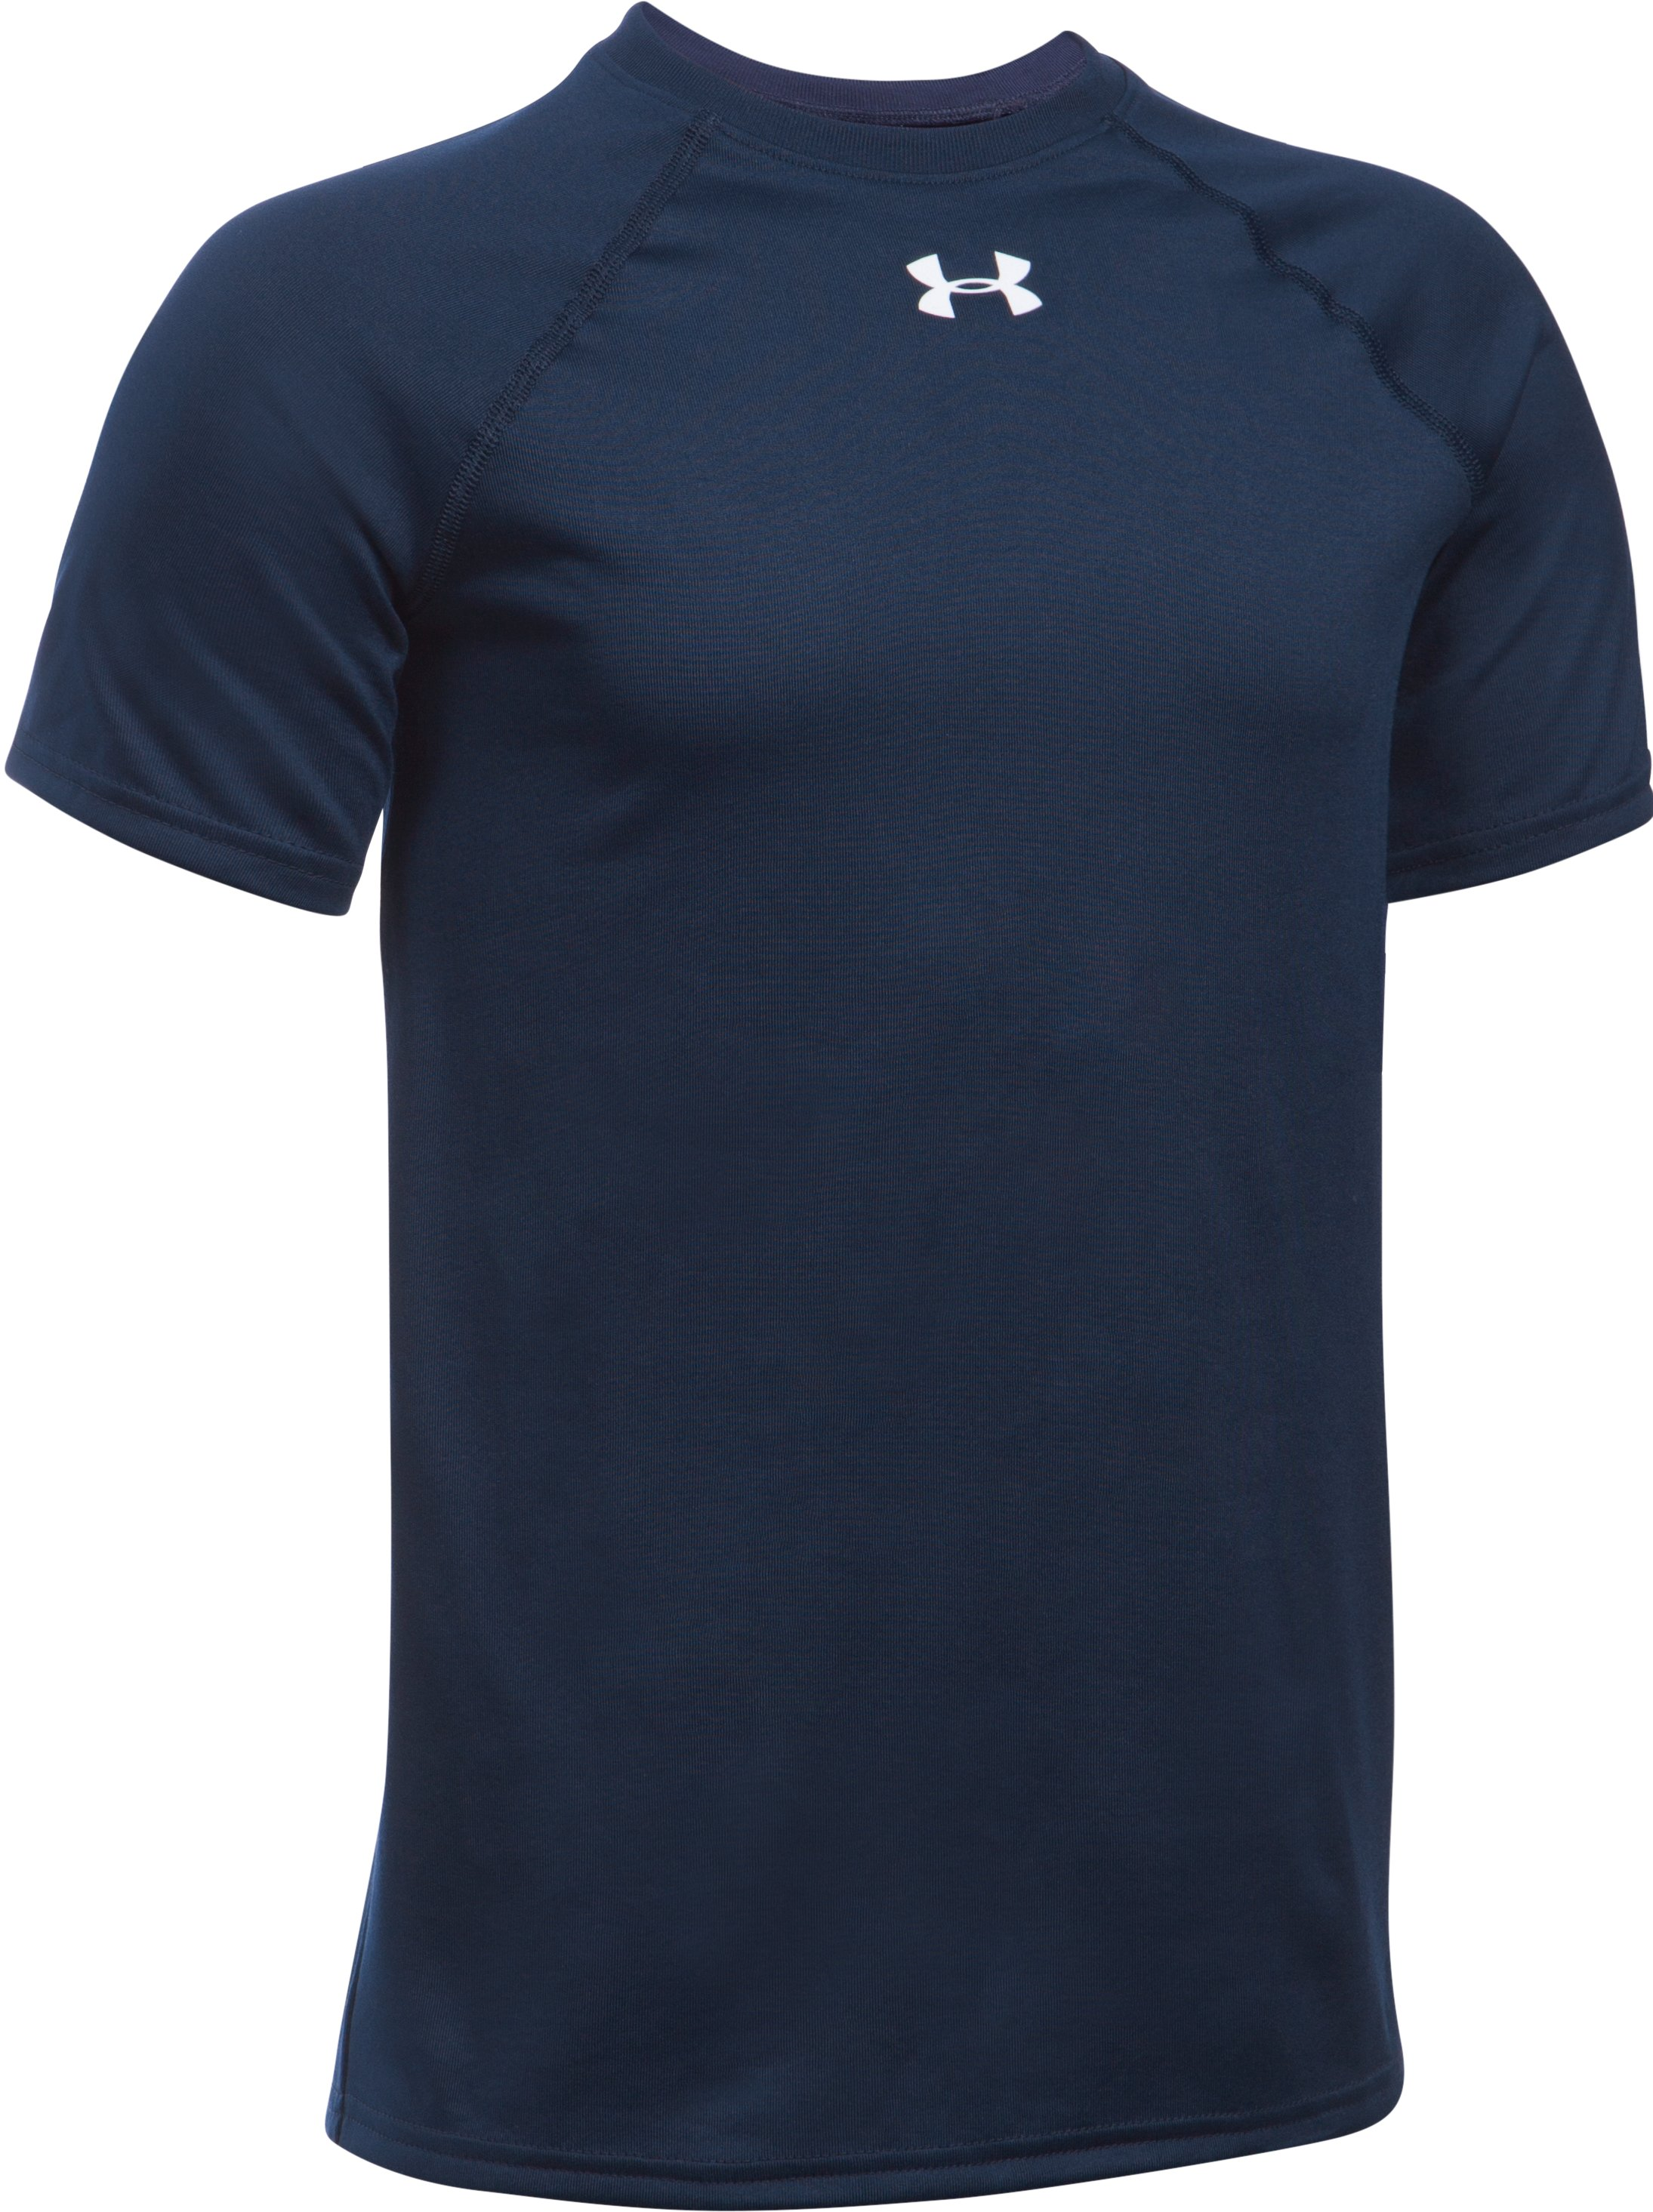 Boys' UA Locker Short Sleeve T-Shirt, Midnight Navy